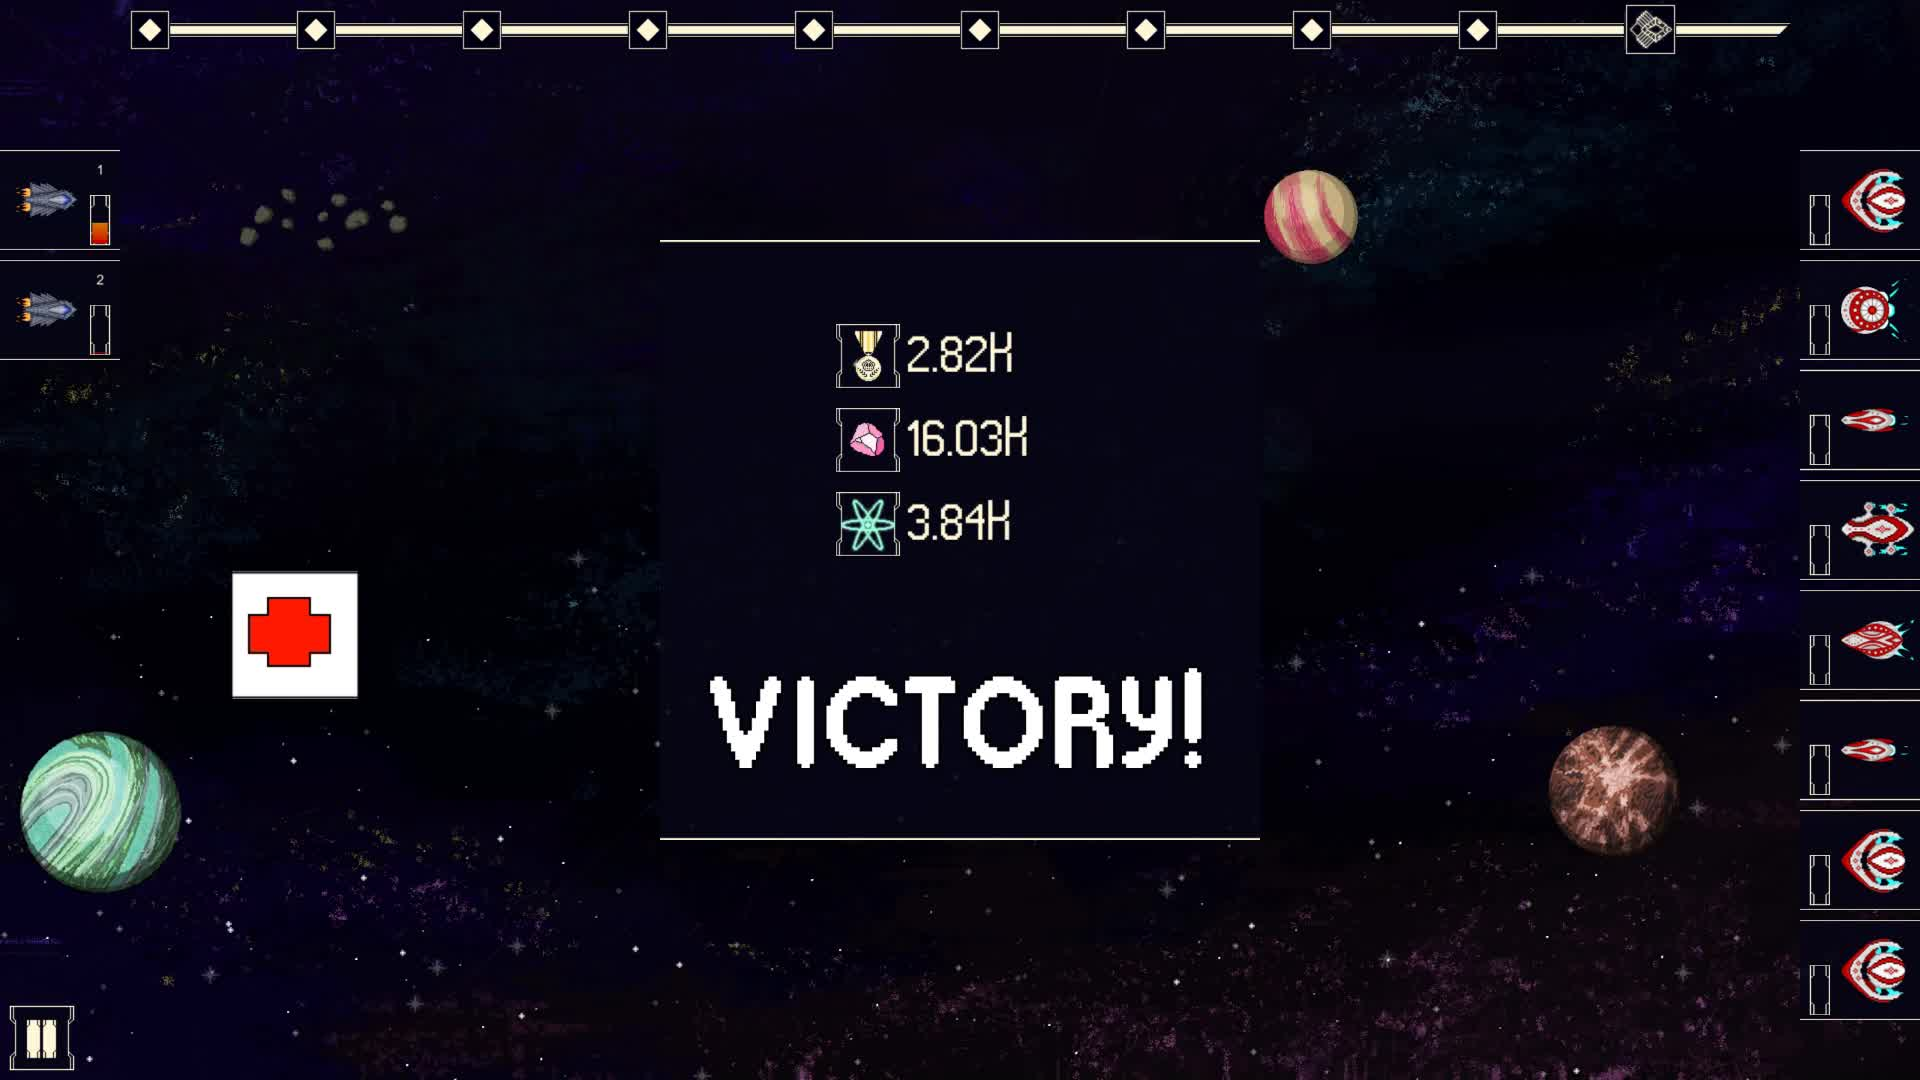 clicker, gamedev, incremental game, indie game, indiedev, strategy, tactics, Lazy Galaxy: Intergalactic Cannon Shoots Projectiles GIFs